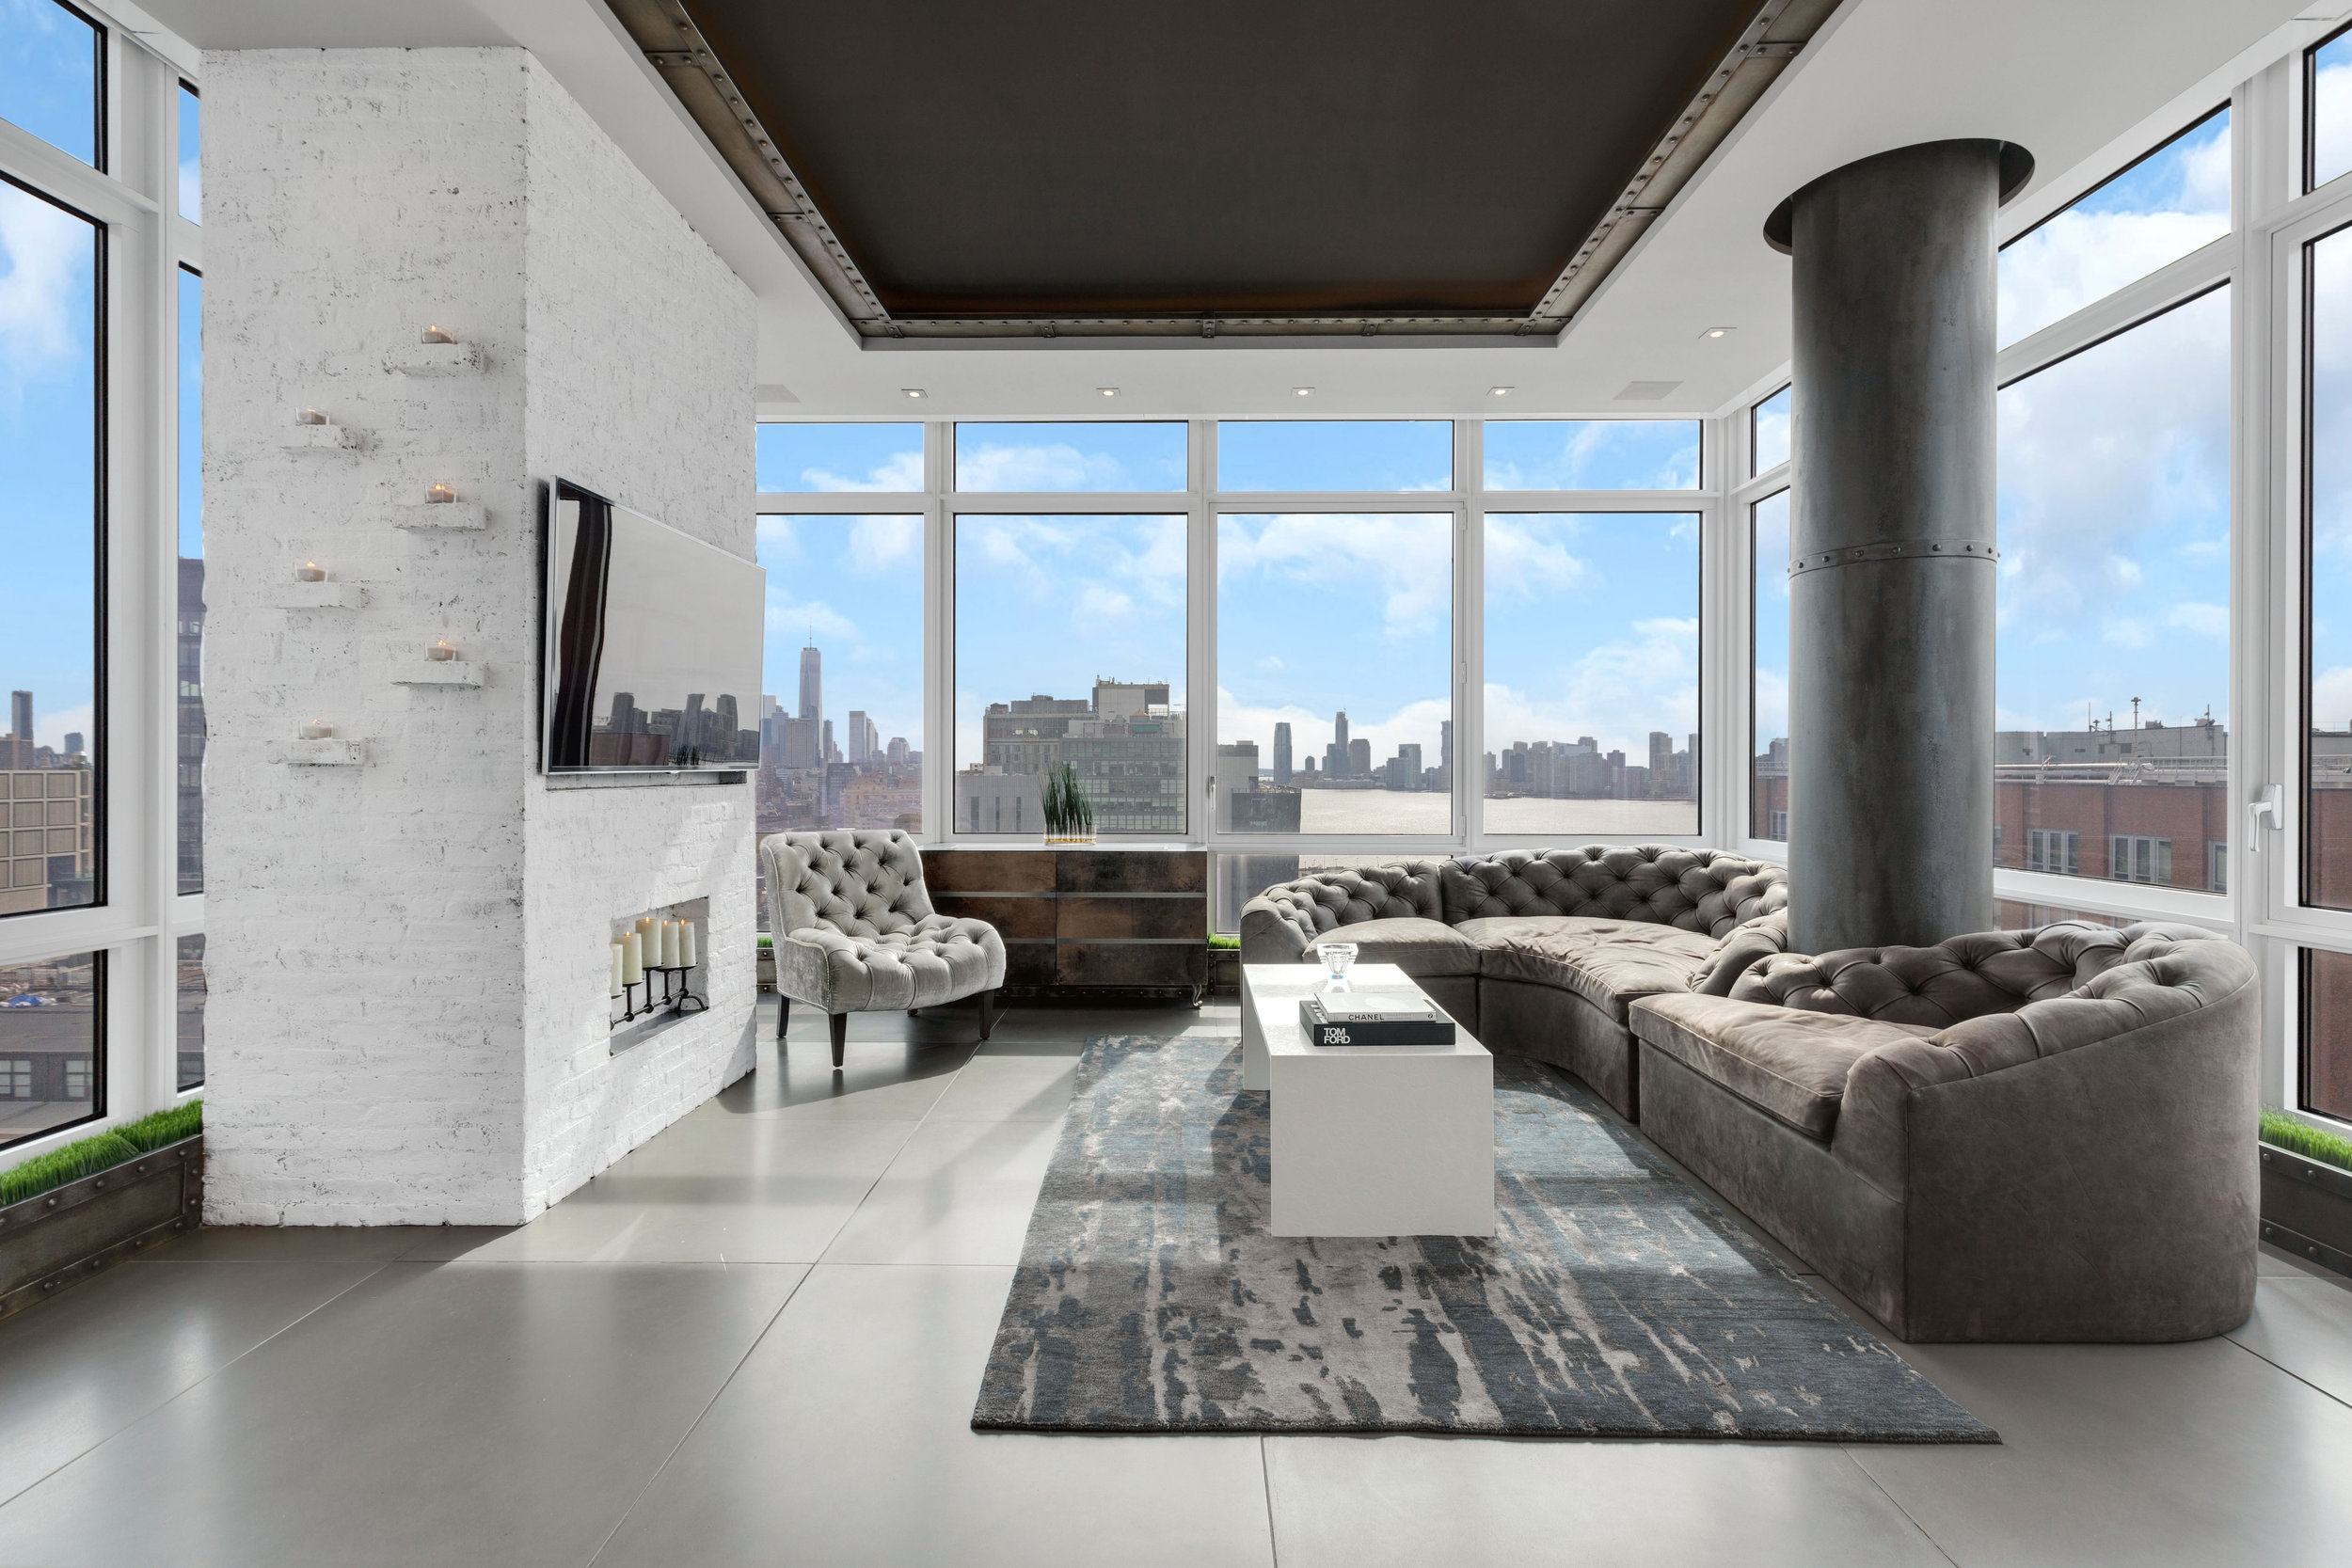 450 West 17th street - 3 BED | 3 BATH | CHELSEA | $4,495,000